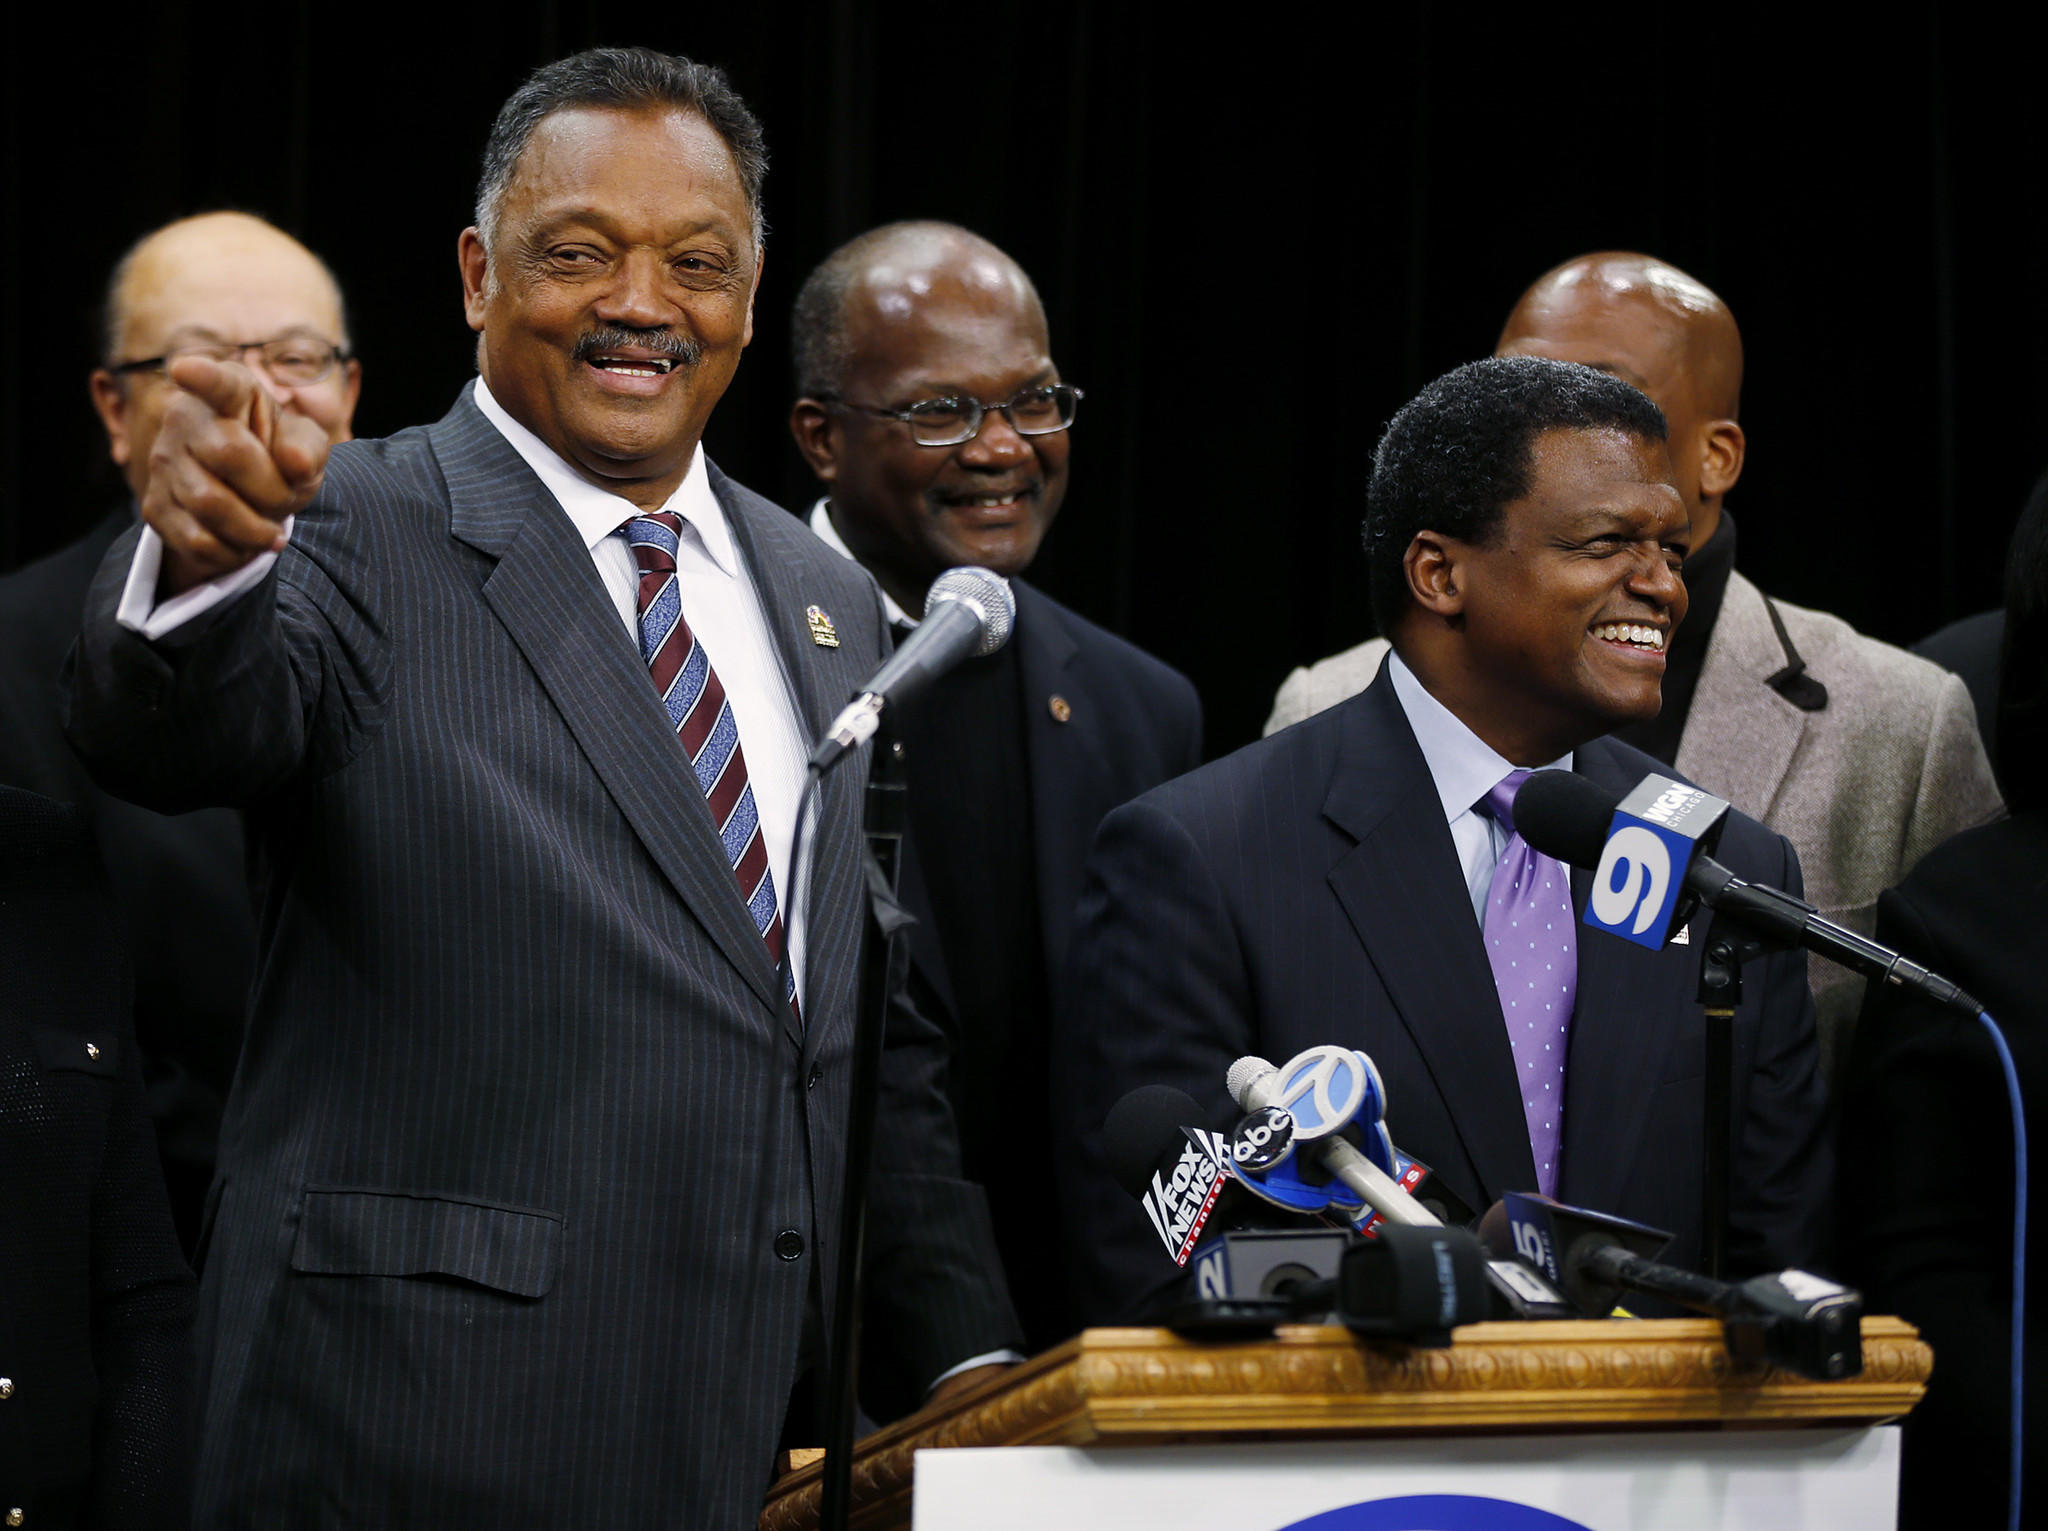 Rev. Jesse Jackson, left, speaks with Robert Goodman, right, during a press conference at Rainbow/PUSH headquarters in Chicago. Thirty years ago, Rev. Jackson negotiated the release of Goodman, a US Navy pilot that had been shot down over Lebanon.